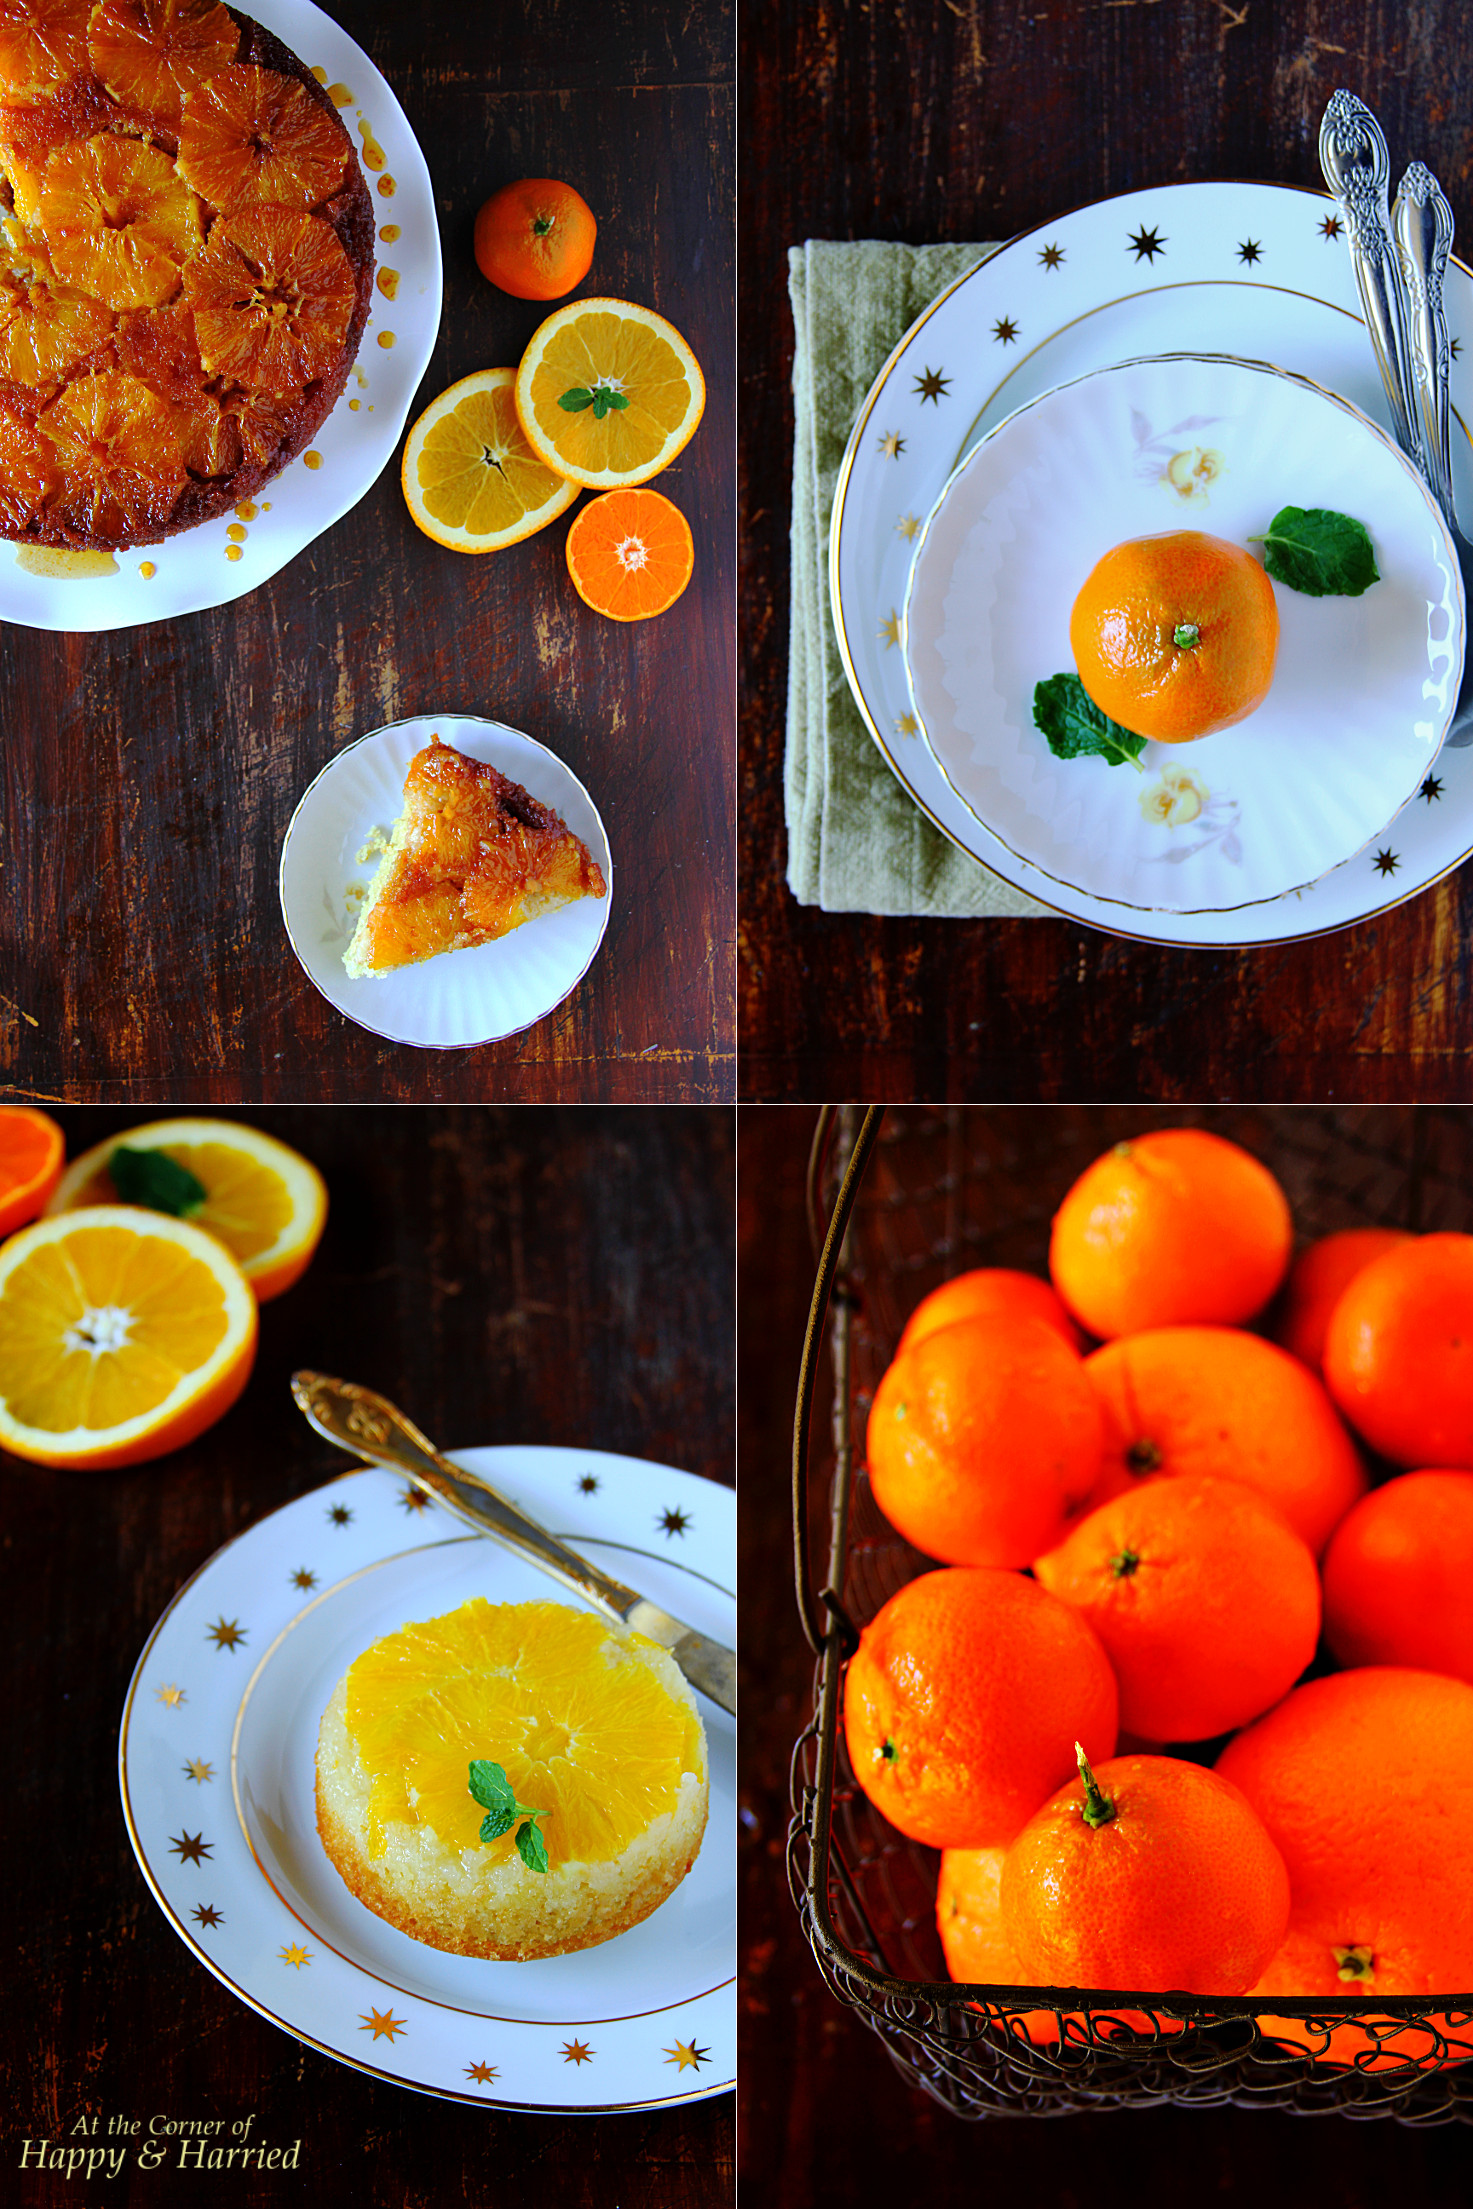 How To Make Orange Upside-Down Cake